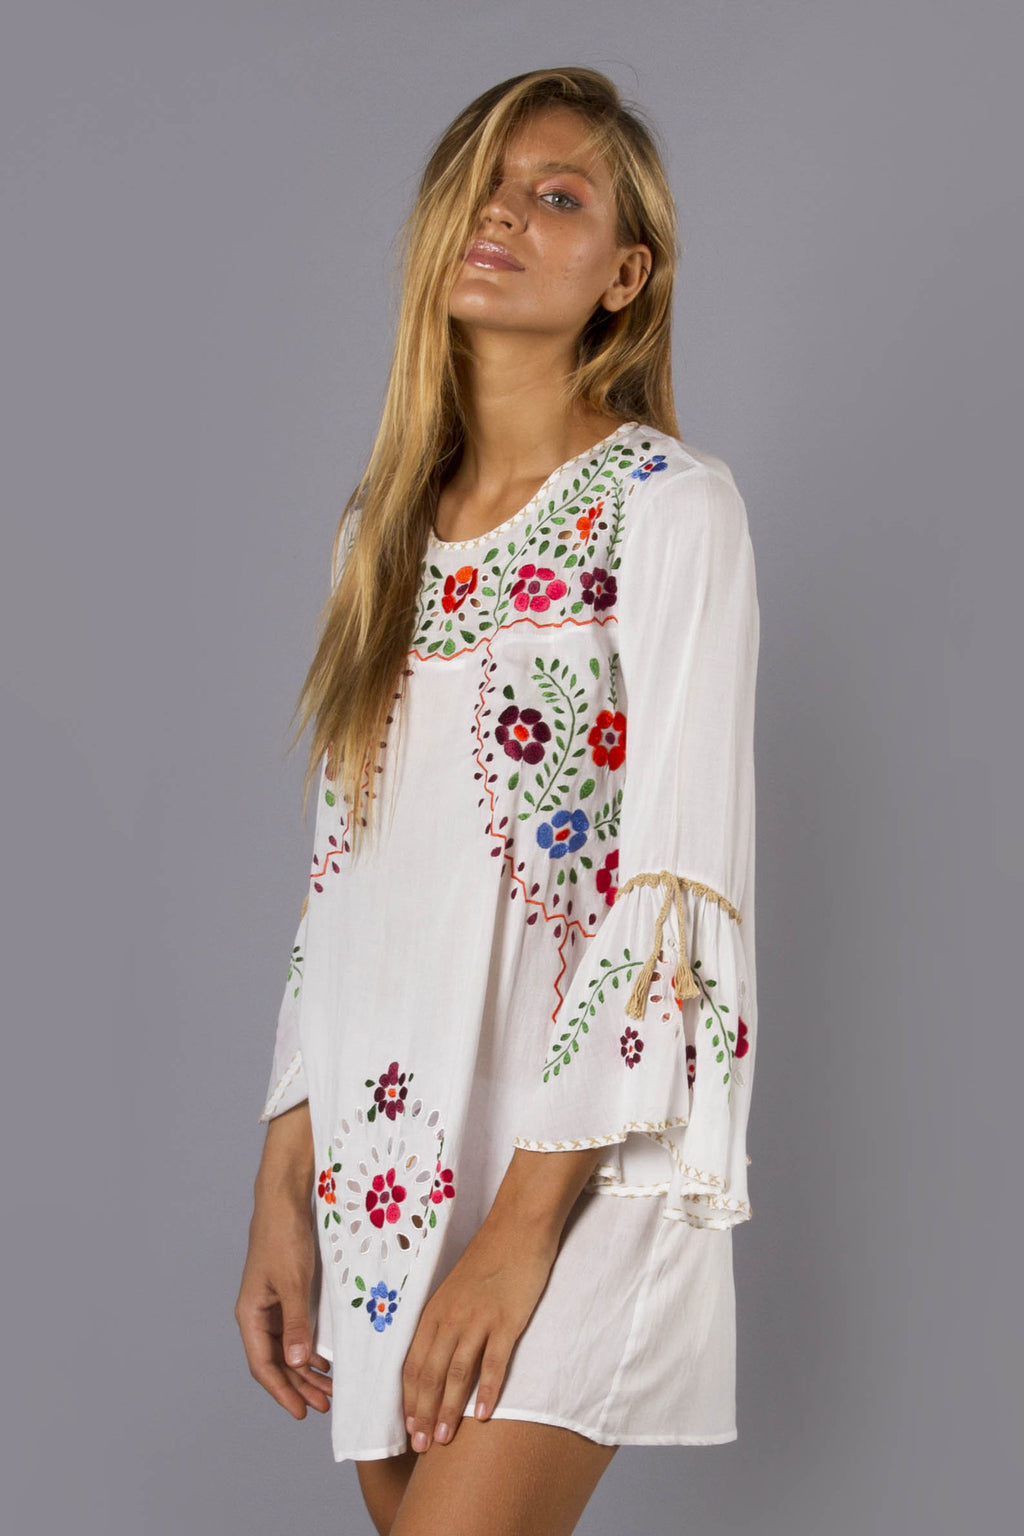 FILLYBOO - 'WOODSTOCK' MINI DRESS - IVORY